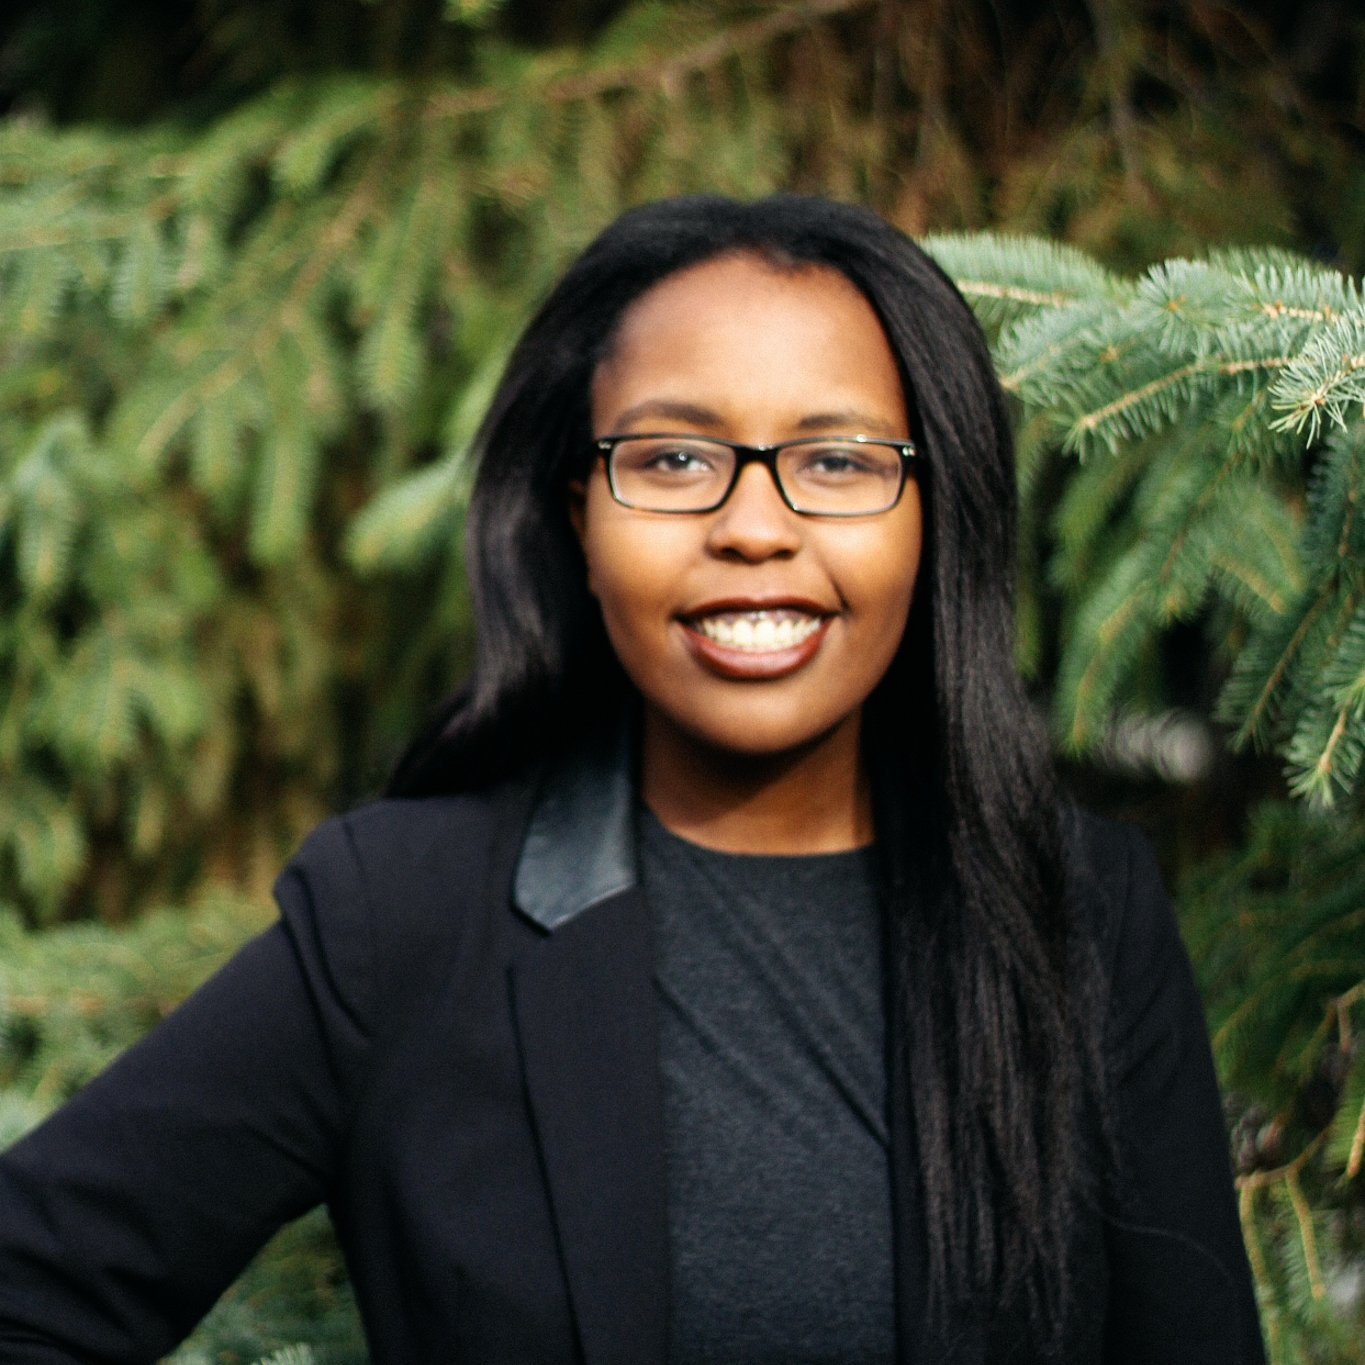 SoCo Project Leader:Makena Kigunda - Makena is an ambitious undergraduate student and avid volunteer at the University of Alberta, pursuing a Bachelor of Commerce in Business Economics & Finance. In her spare time she enjoys reading, writing poetry, and dancing (but only when nobody's around). Alongside pursuing career opportunities in management consulting and investment banking, Makena envisions starting her own venture, publishing a series of novels, and exploring different parts of the world.